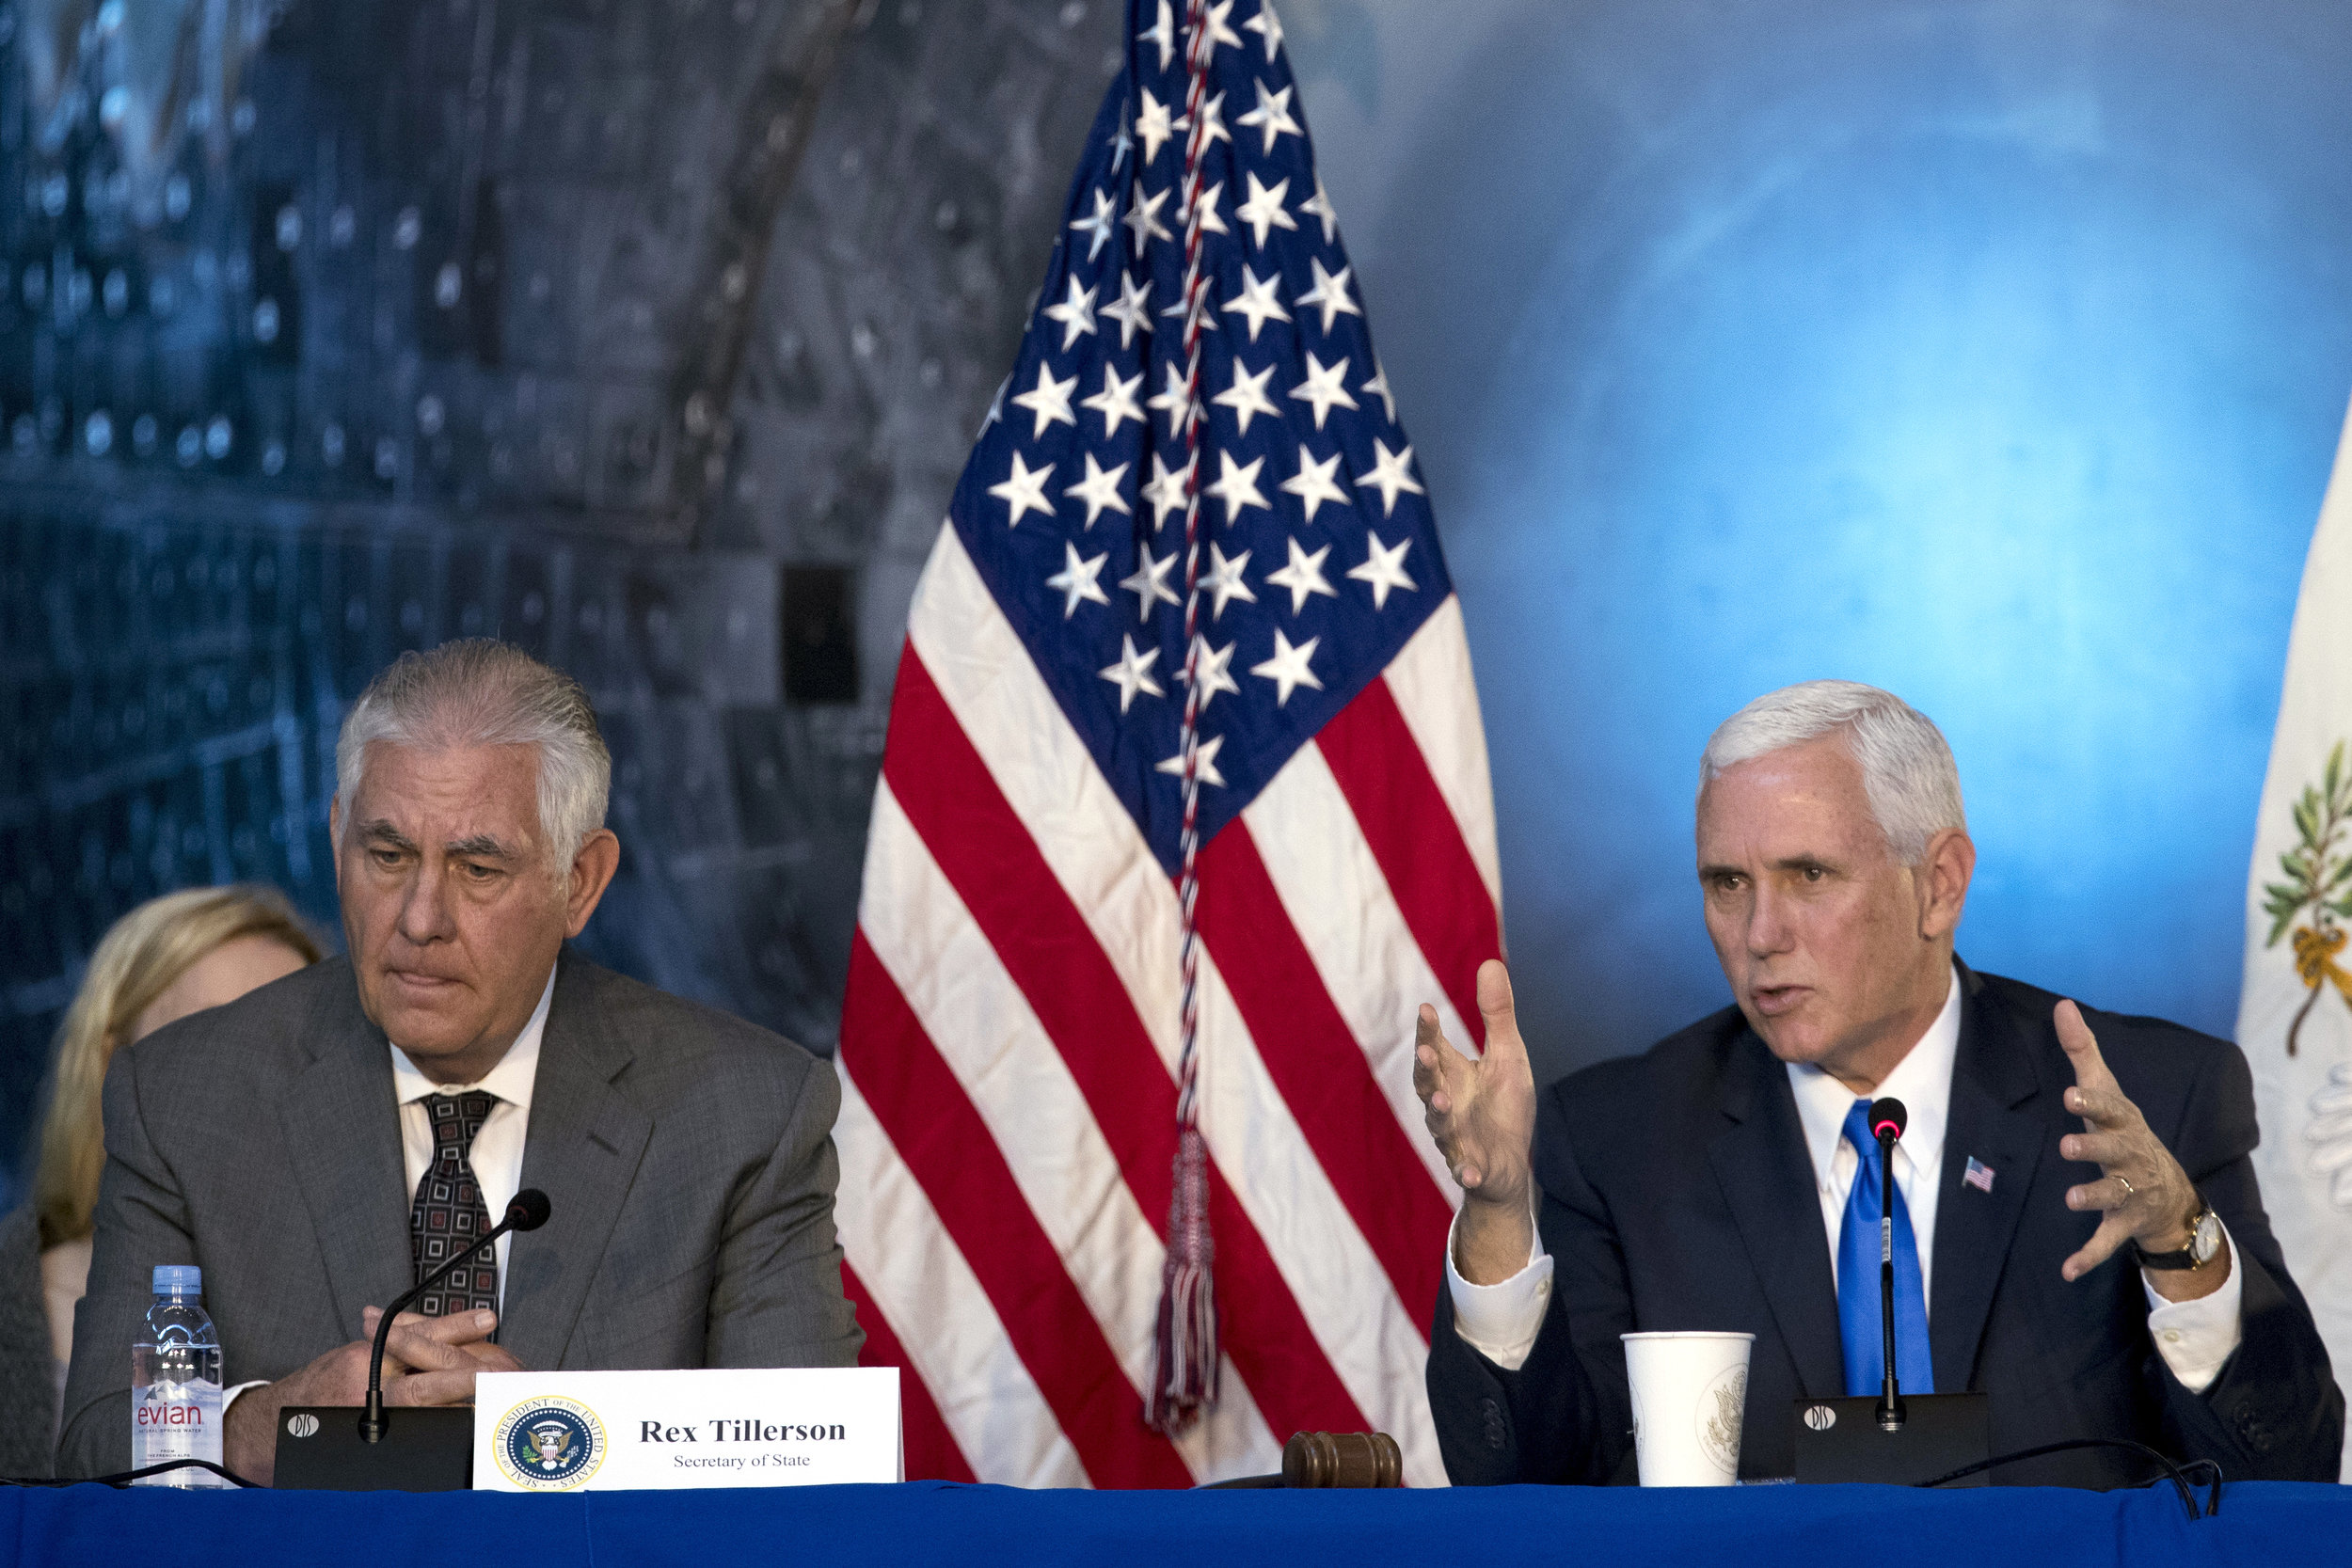 Vice President Mike Pence, right, accompanied by Secretary of State Rex Tillerson, left, speaks during the first meeting of the National Space Council at the Steven F. Udvar-Hazy Center, Thursday, Oct. 5, 2017, in Chantilly, Va. (AP Photo/Andrew Harnik)